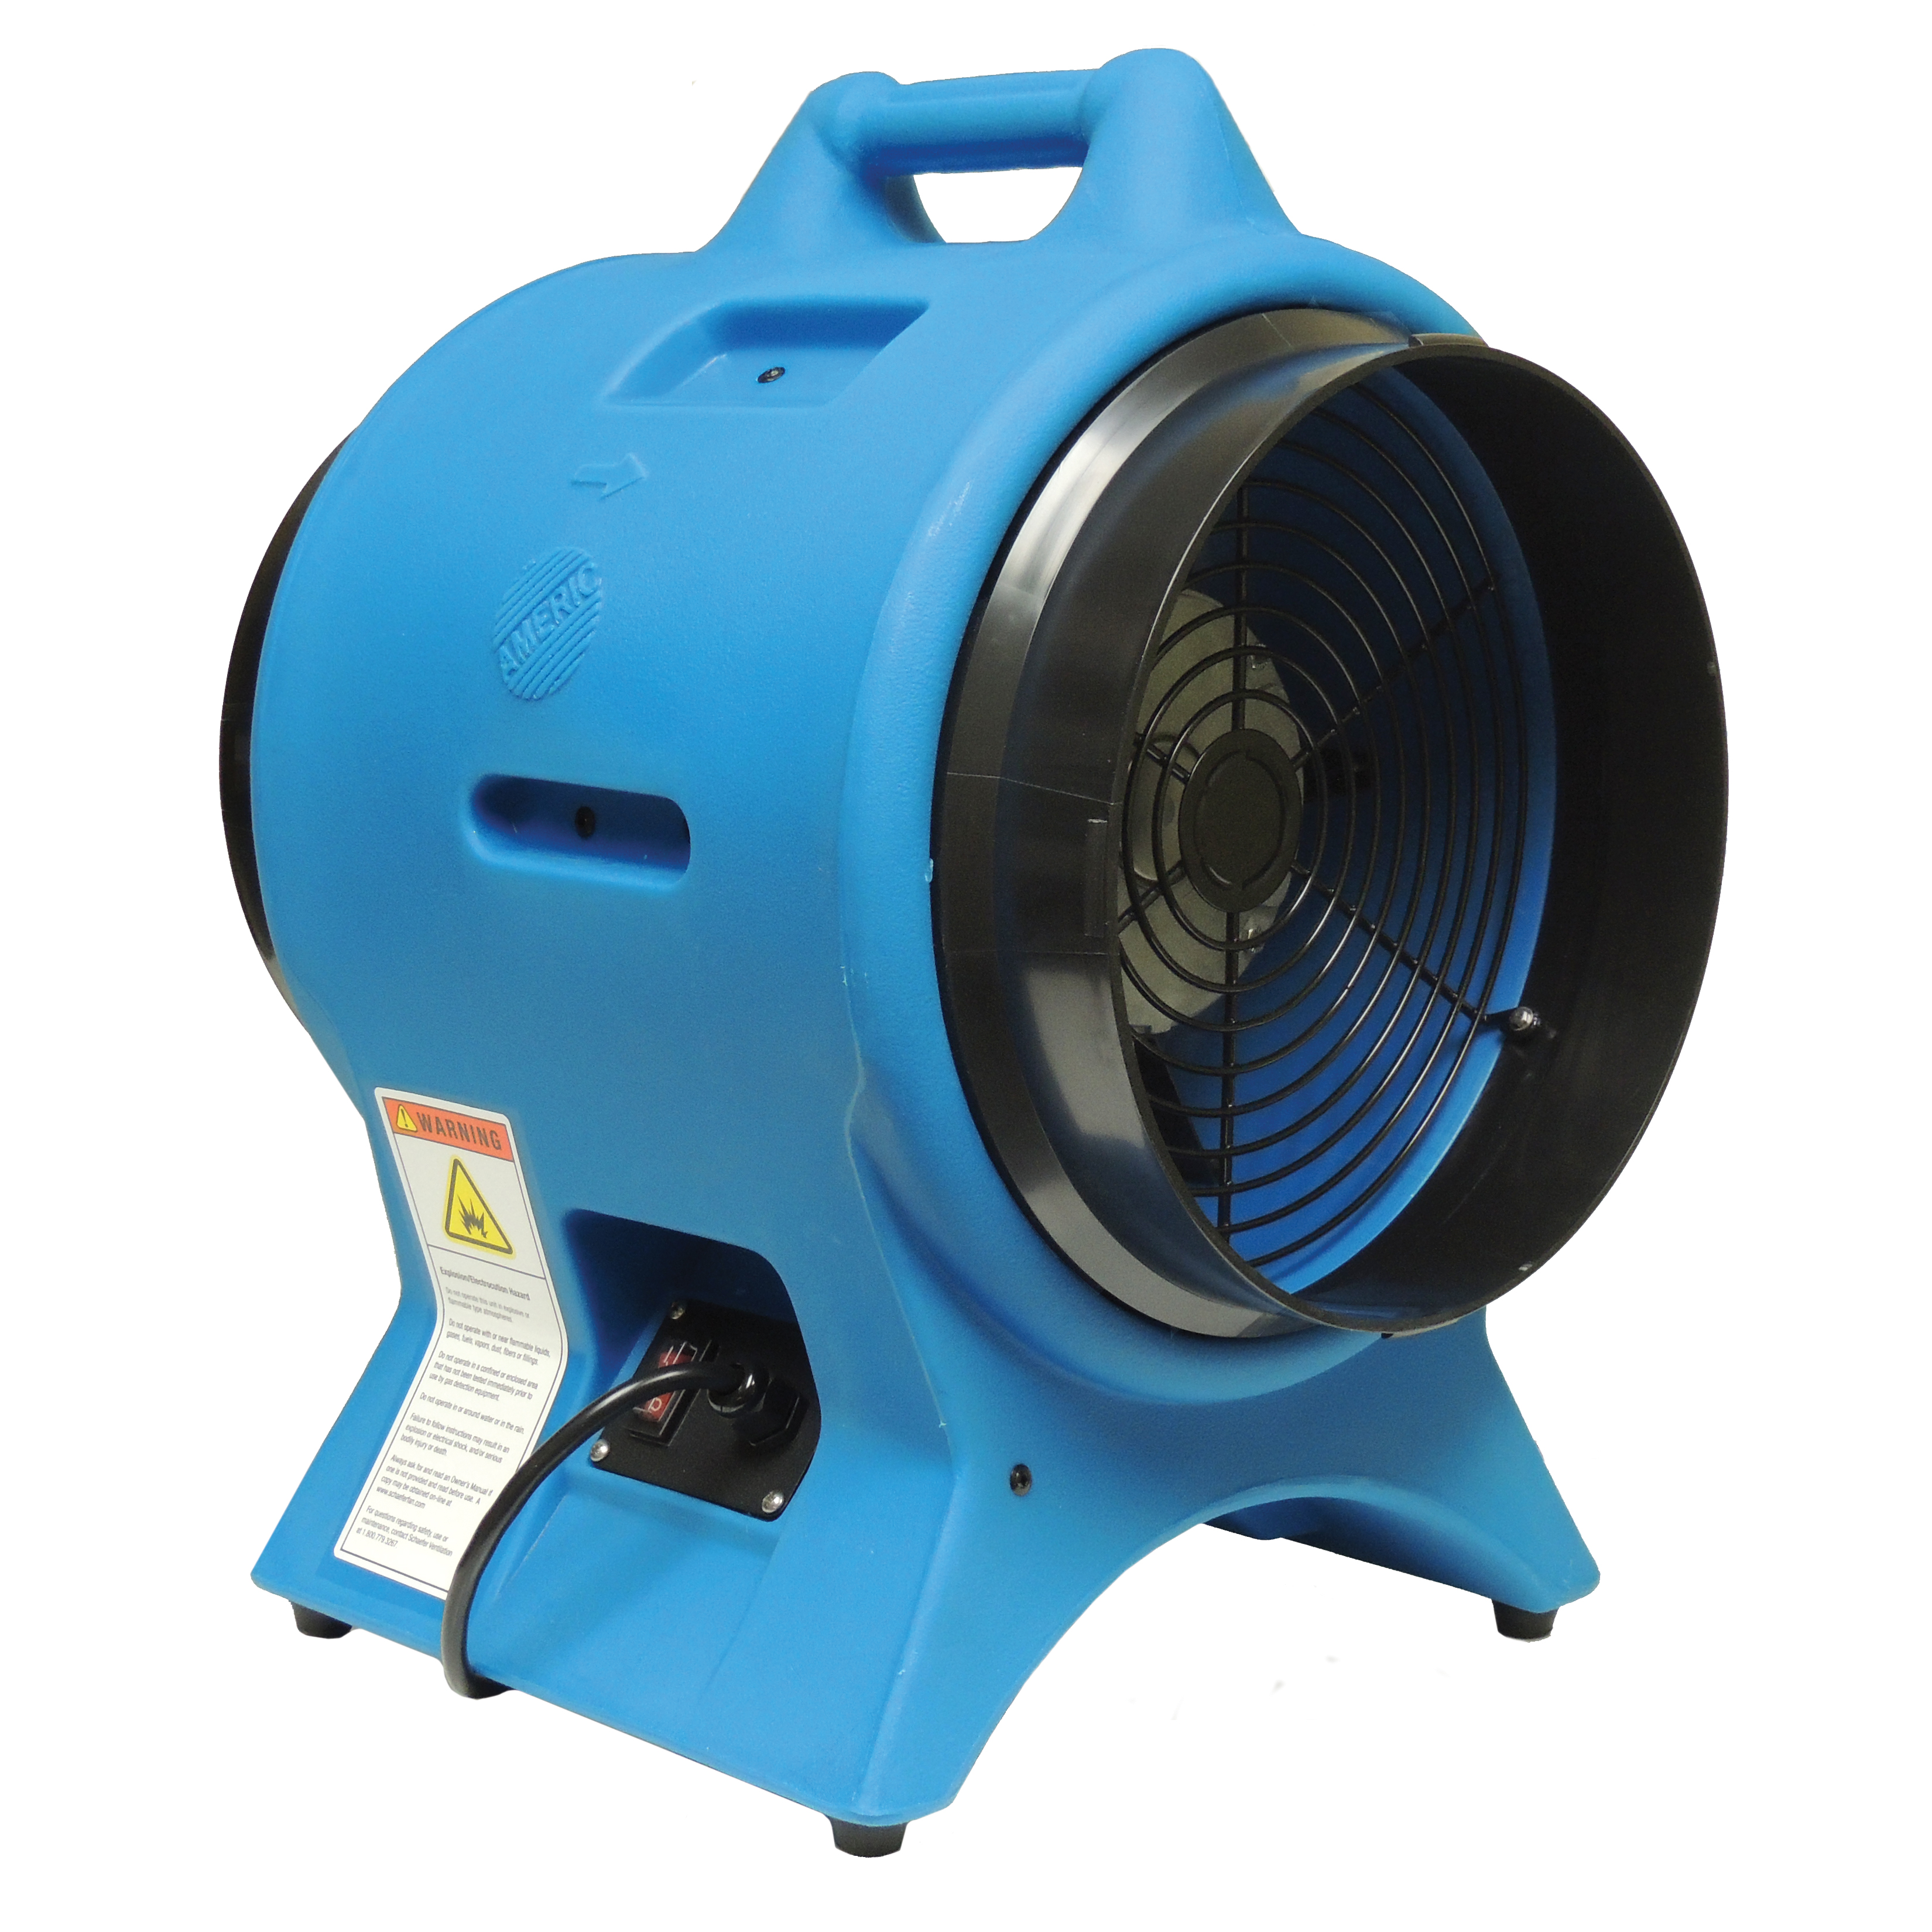 Confined Space Ventilation : Pinnacle americ two speed confined space ventilator